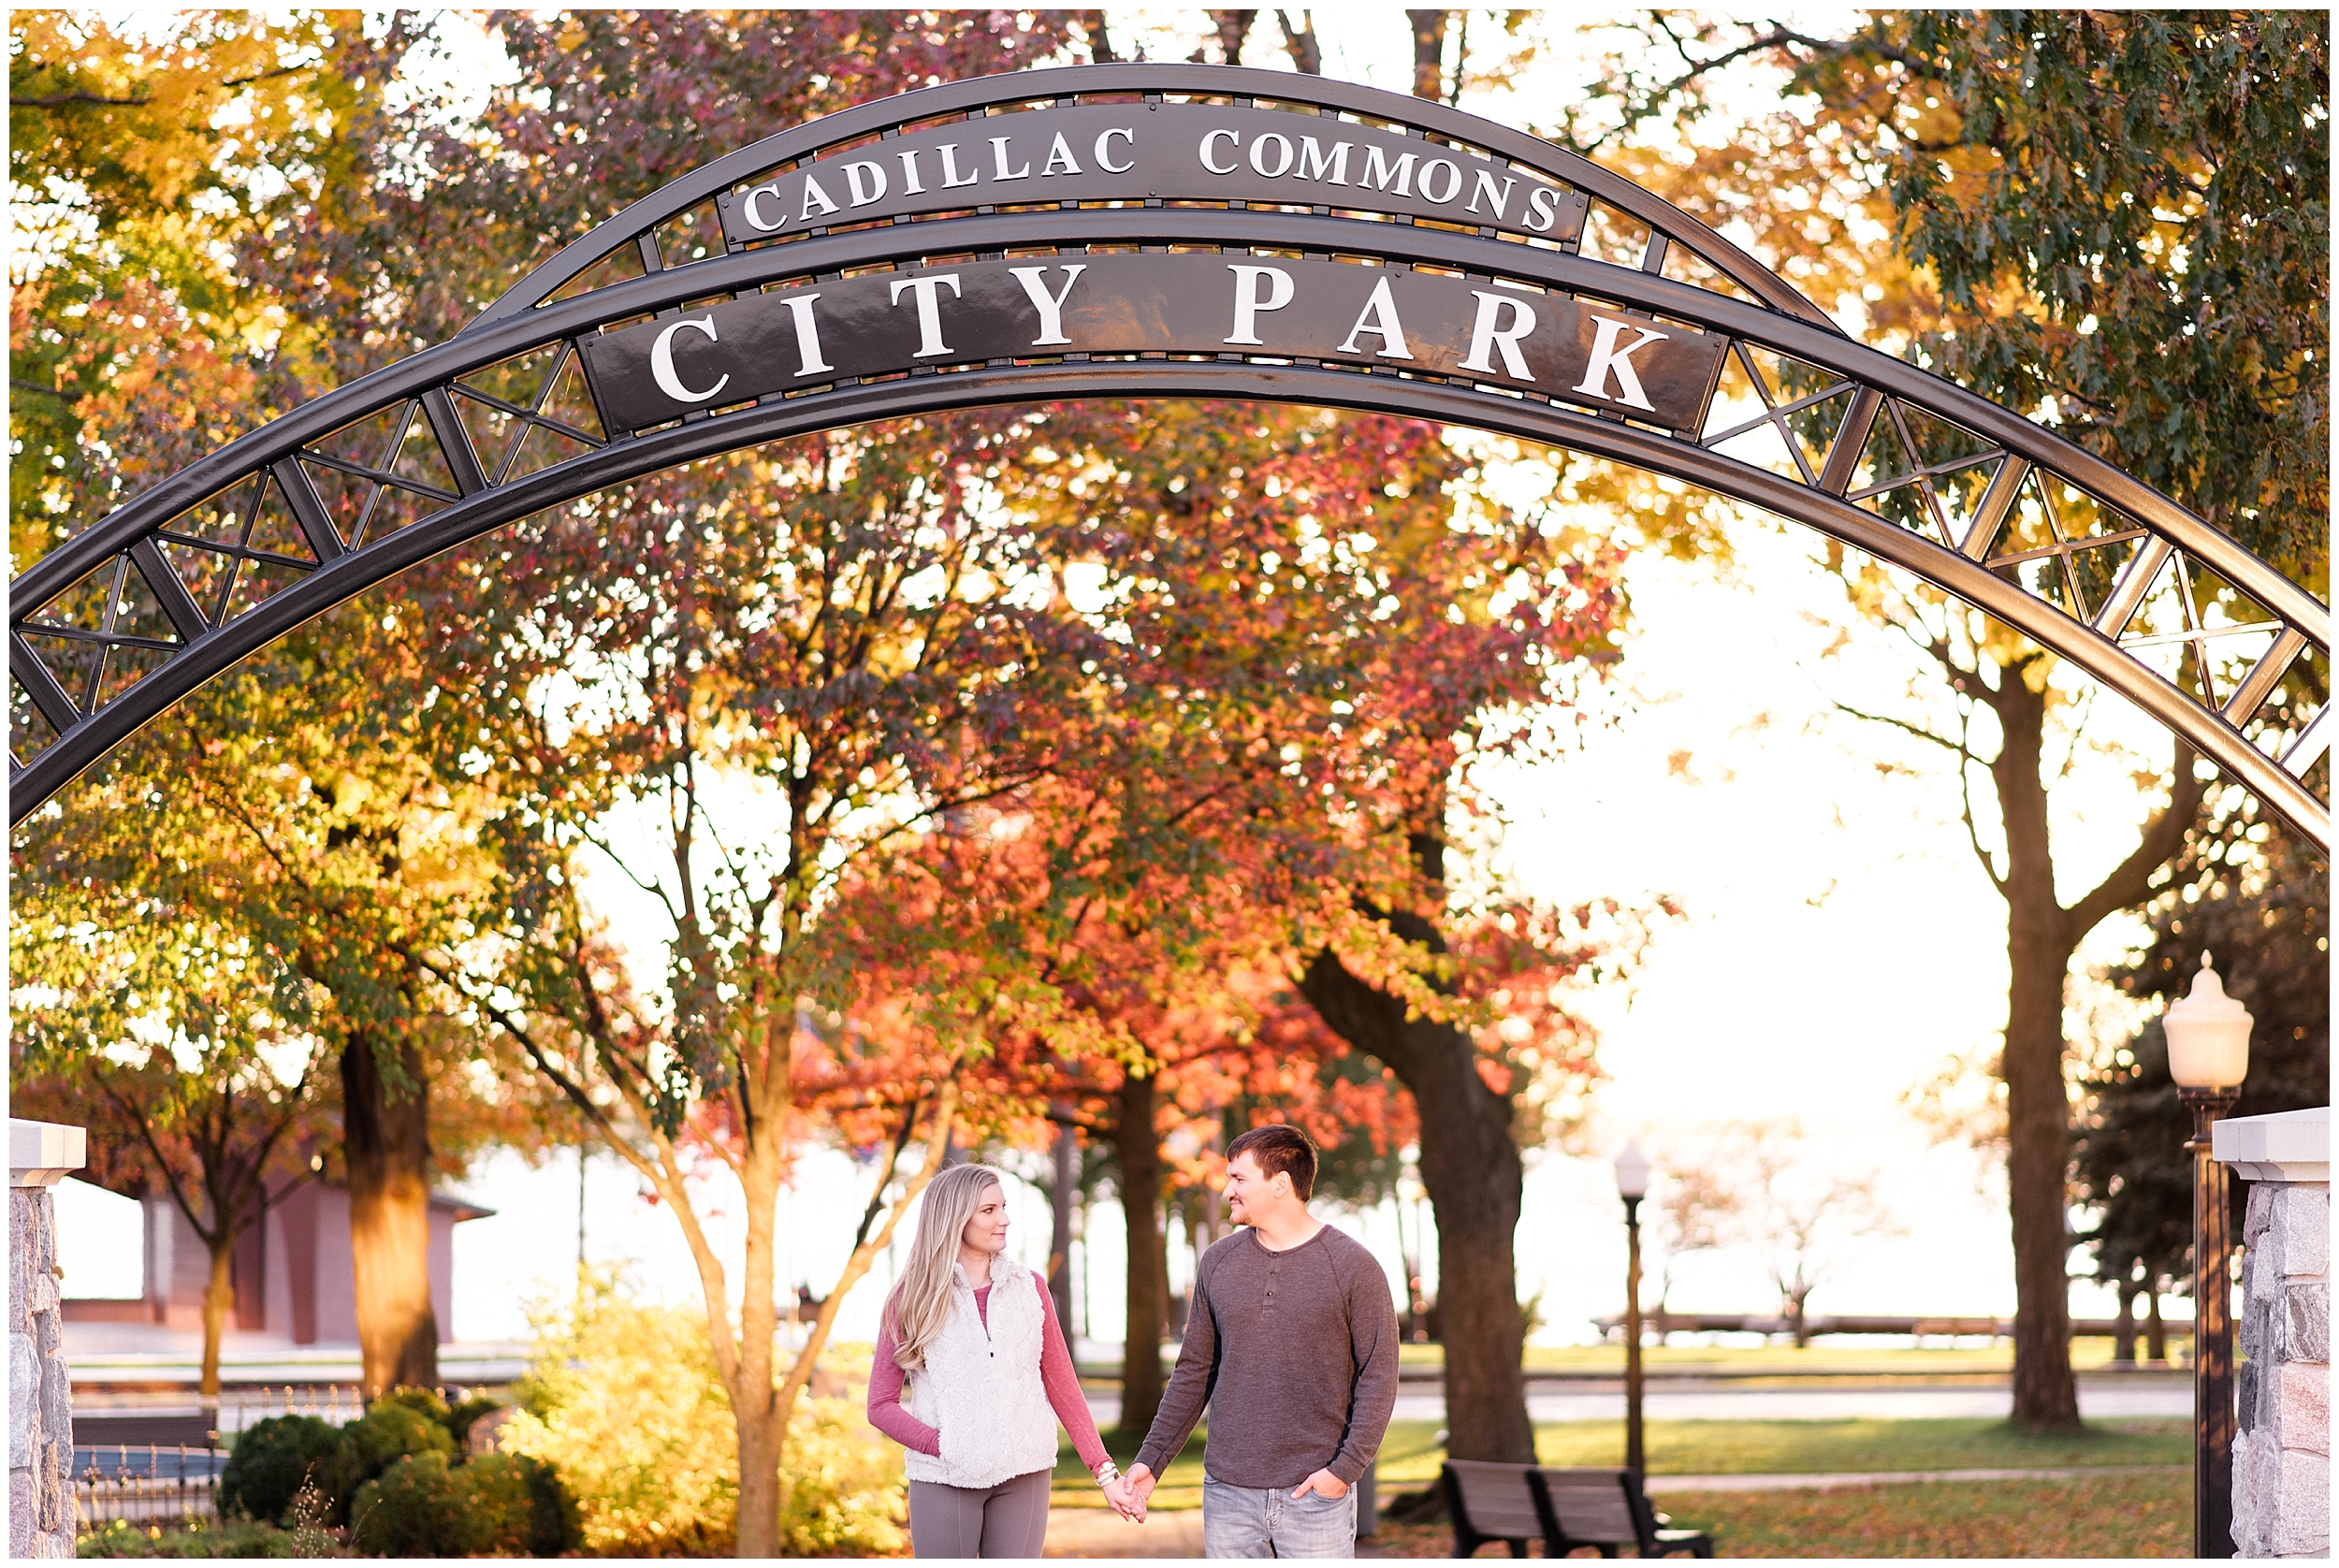 Weddings_by_Raisa_Photography_Cadillac_Michigan_October_Fall_Engagement_Milwaukee_Wisconsin_Photographer_0013.jpg